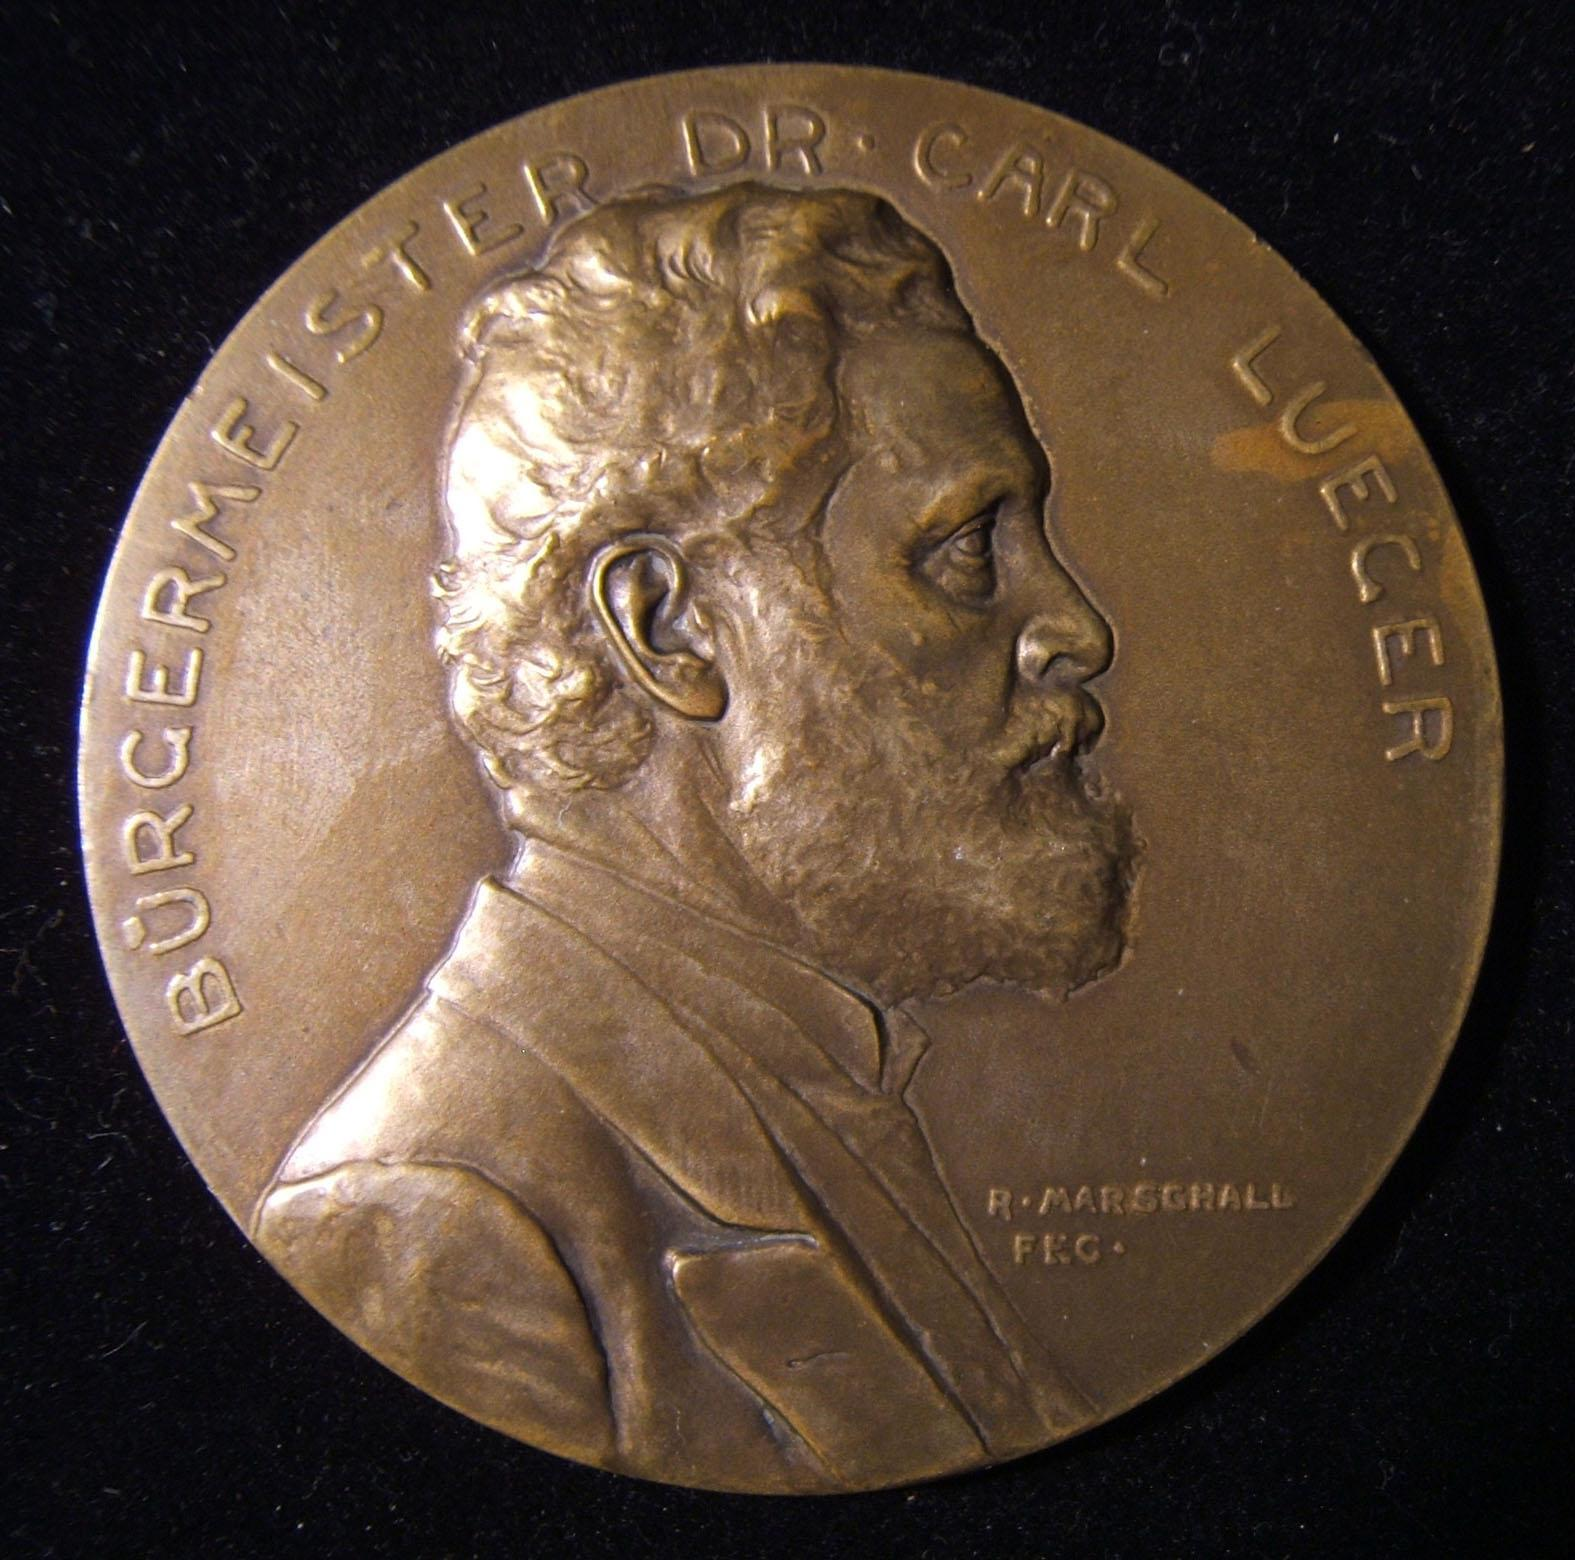 Austrian anti-Semite Karl Lueger 60th birthday medal 1904 by Rudolph F Marschall